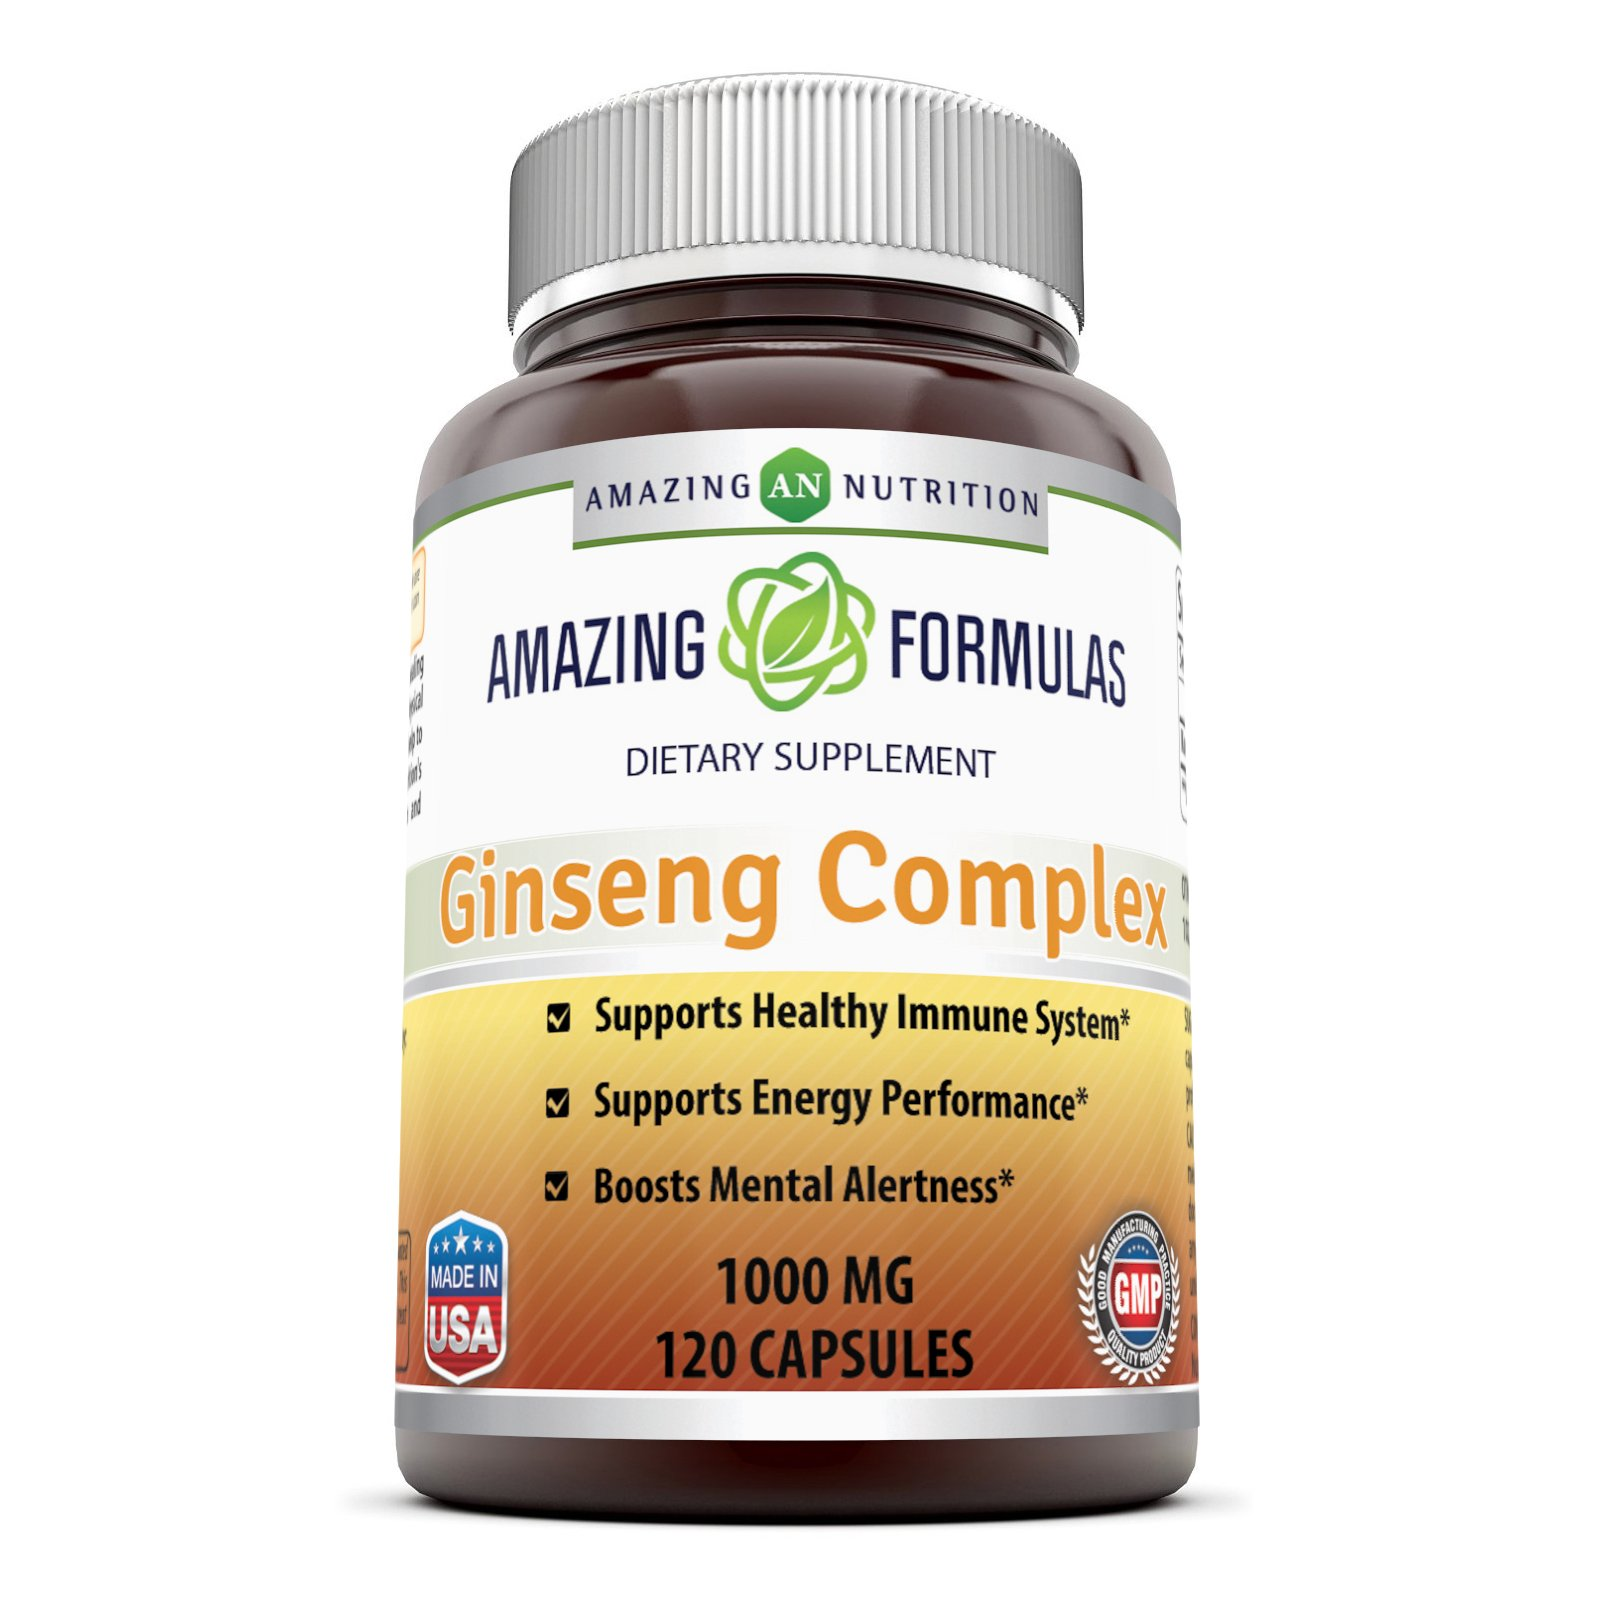 Amazing Nutrition Ginseng Complex – 1000 mg per Serving – Supports Healthy Immune Function, Brain Health, Promotes Energy Performance and More – 120 Capsules Per Bottle (Non-GMO,Gluten Free)